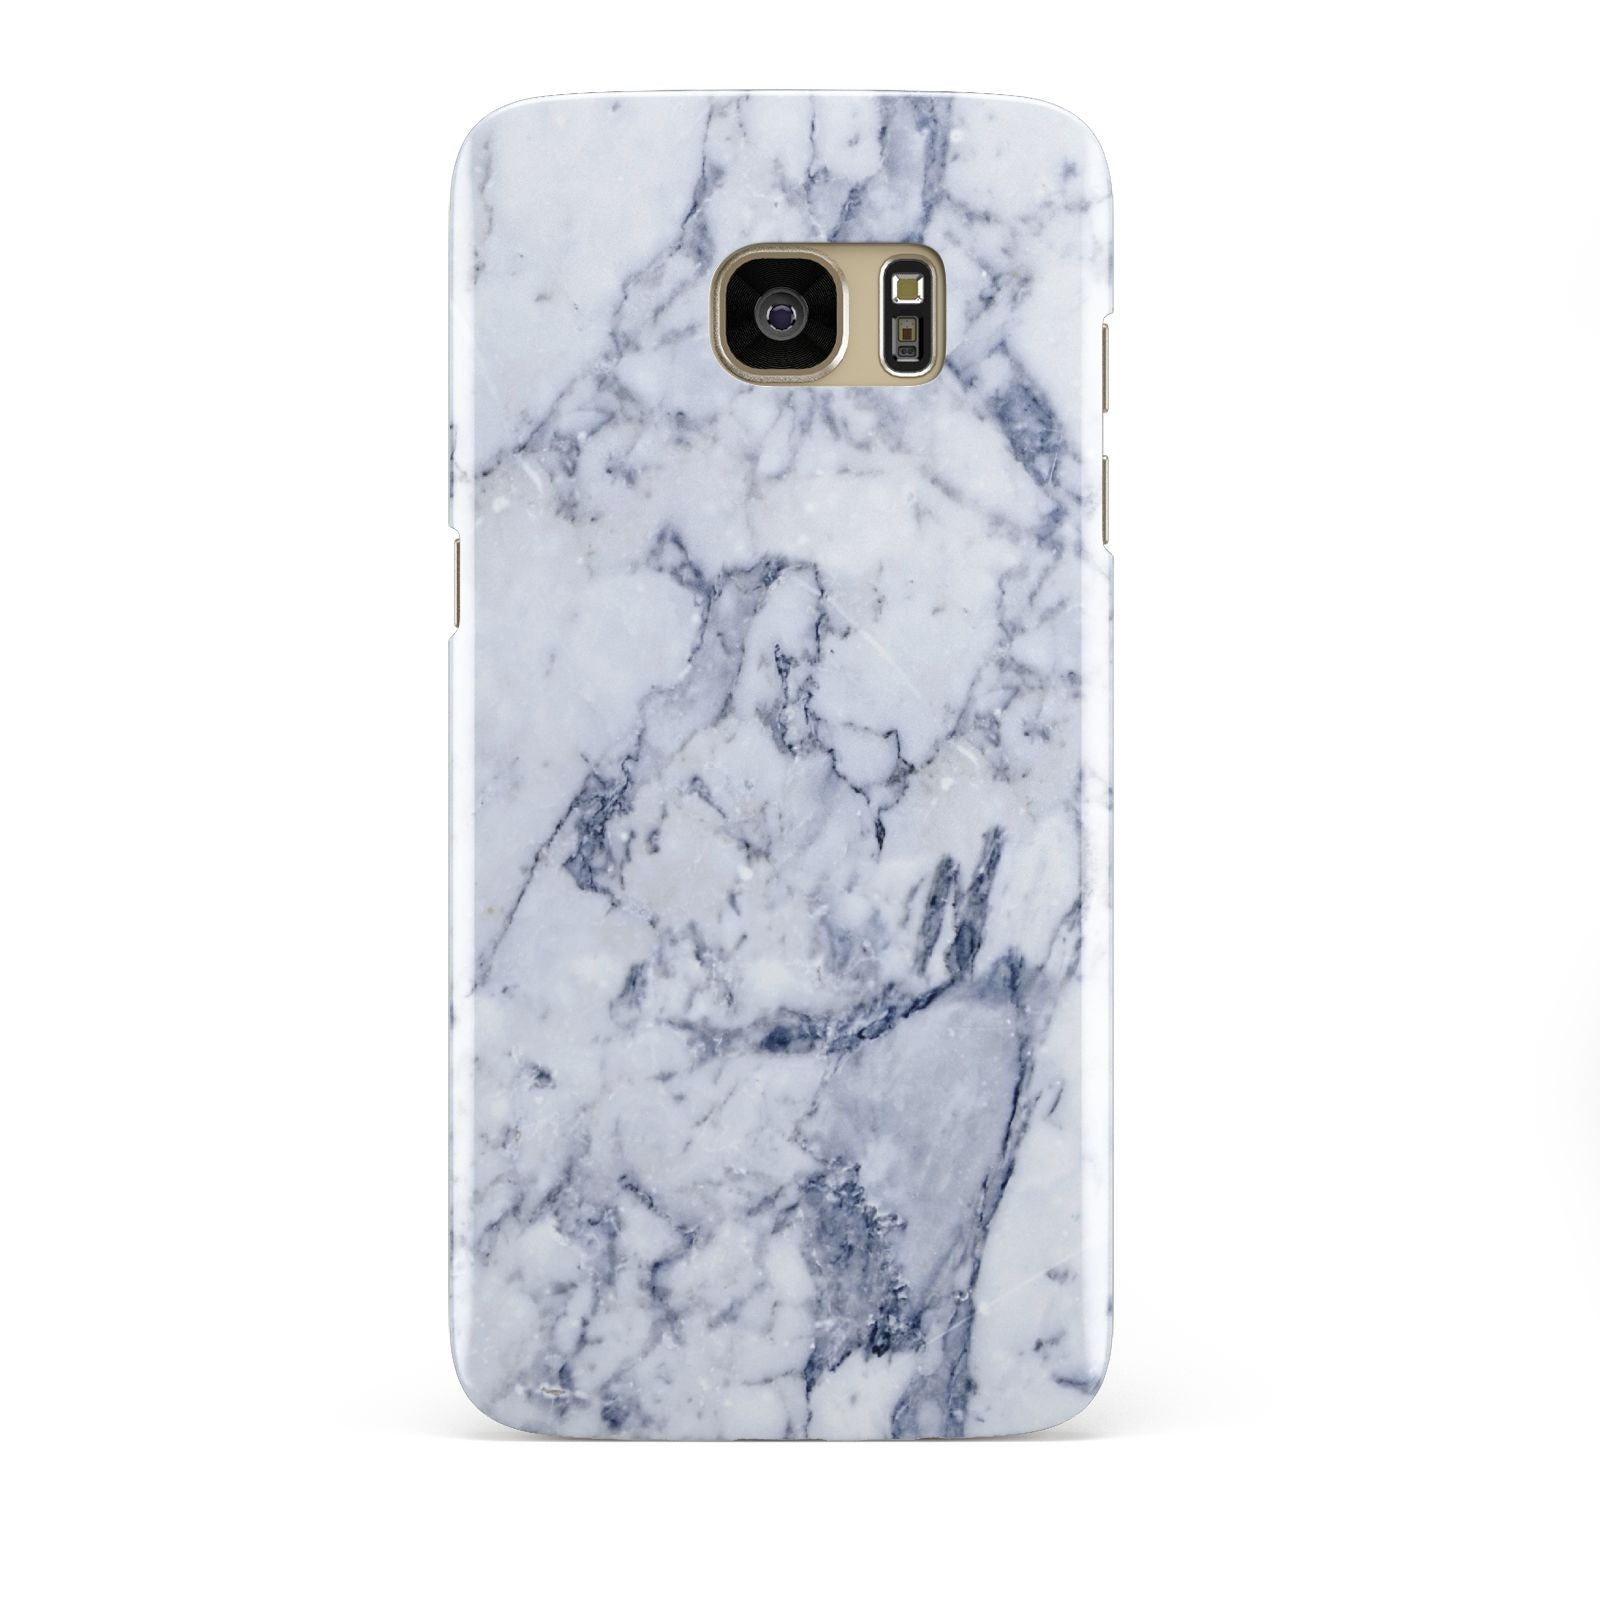 Faux Marble Blue Grey White Samsung Galaxy S7 Edge Case